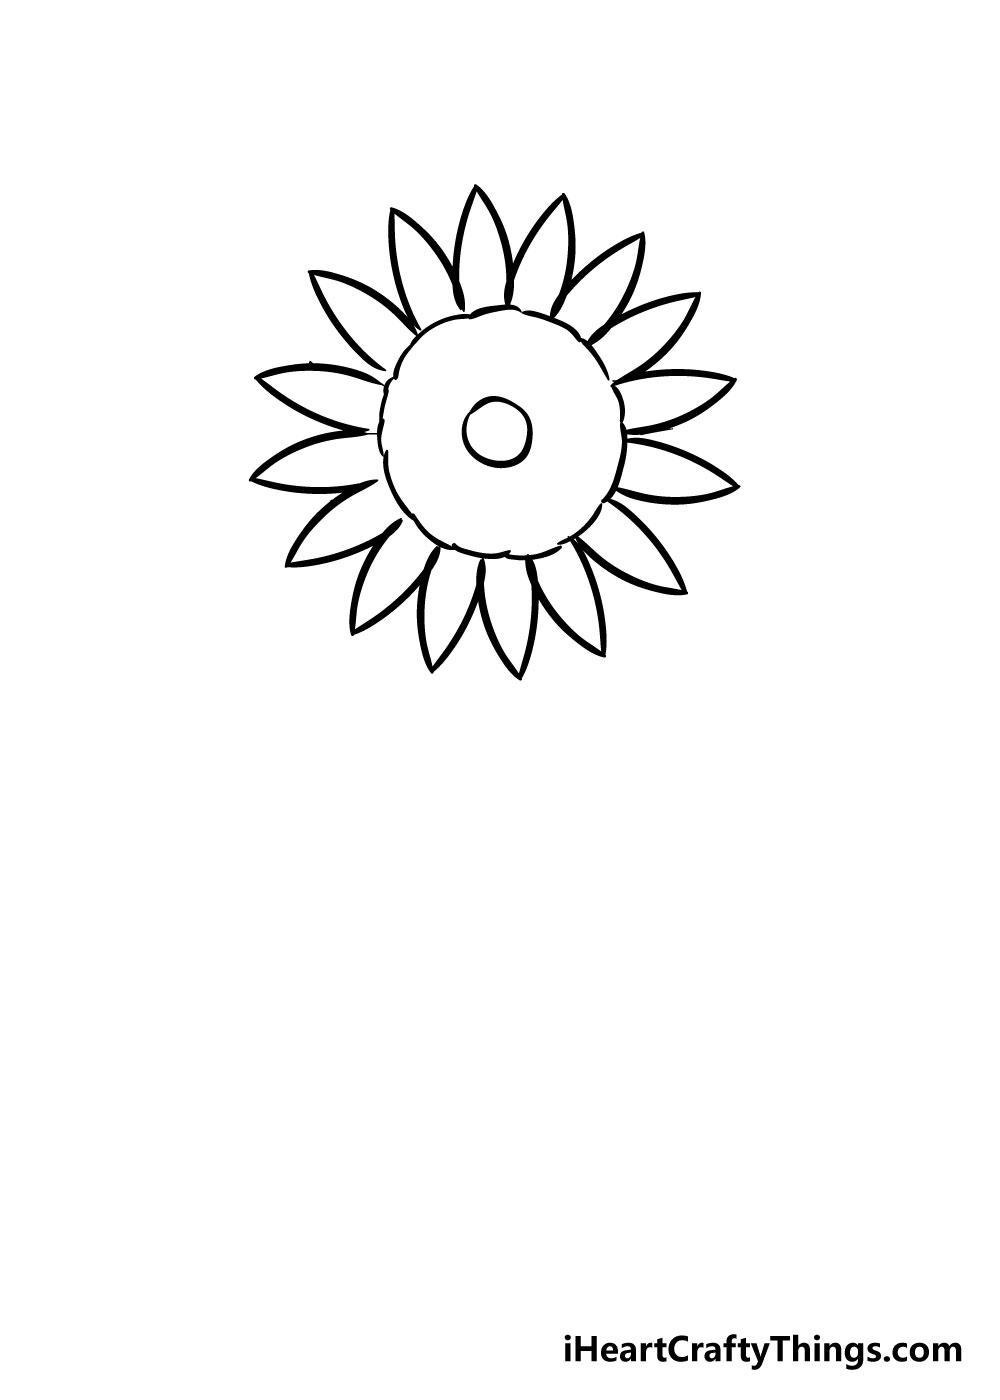 sunflower coloring step 3